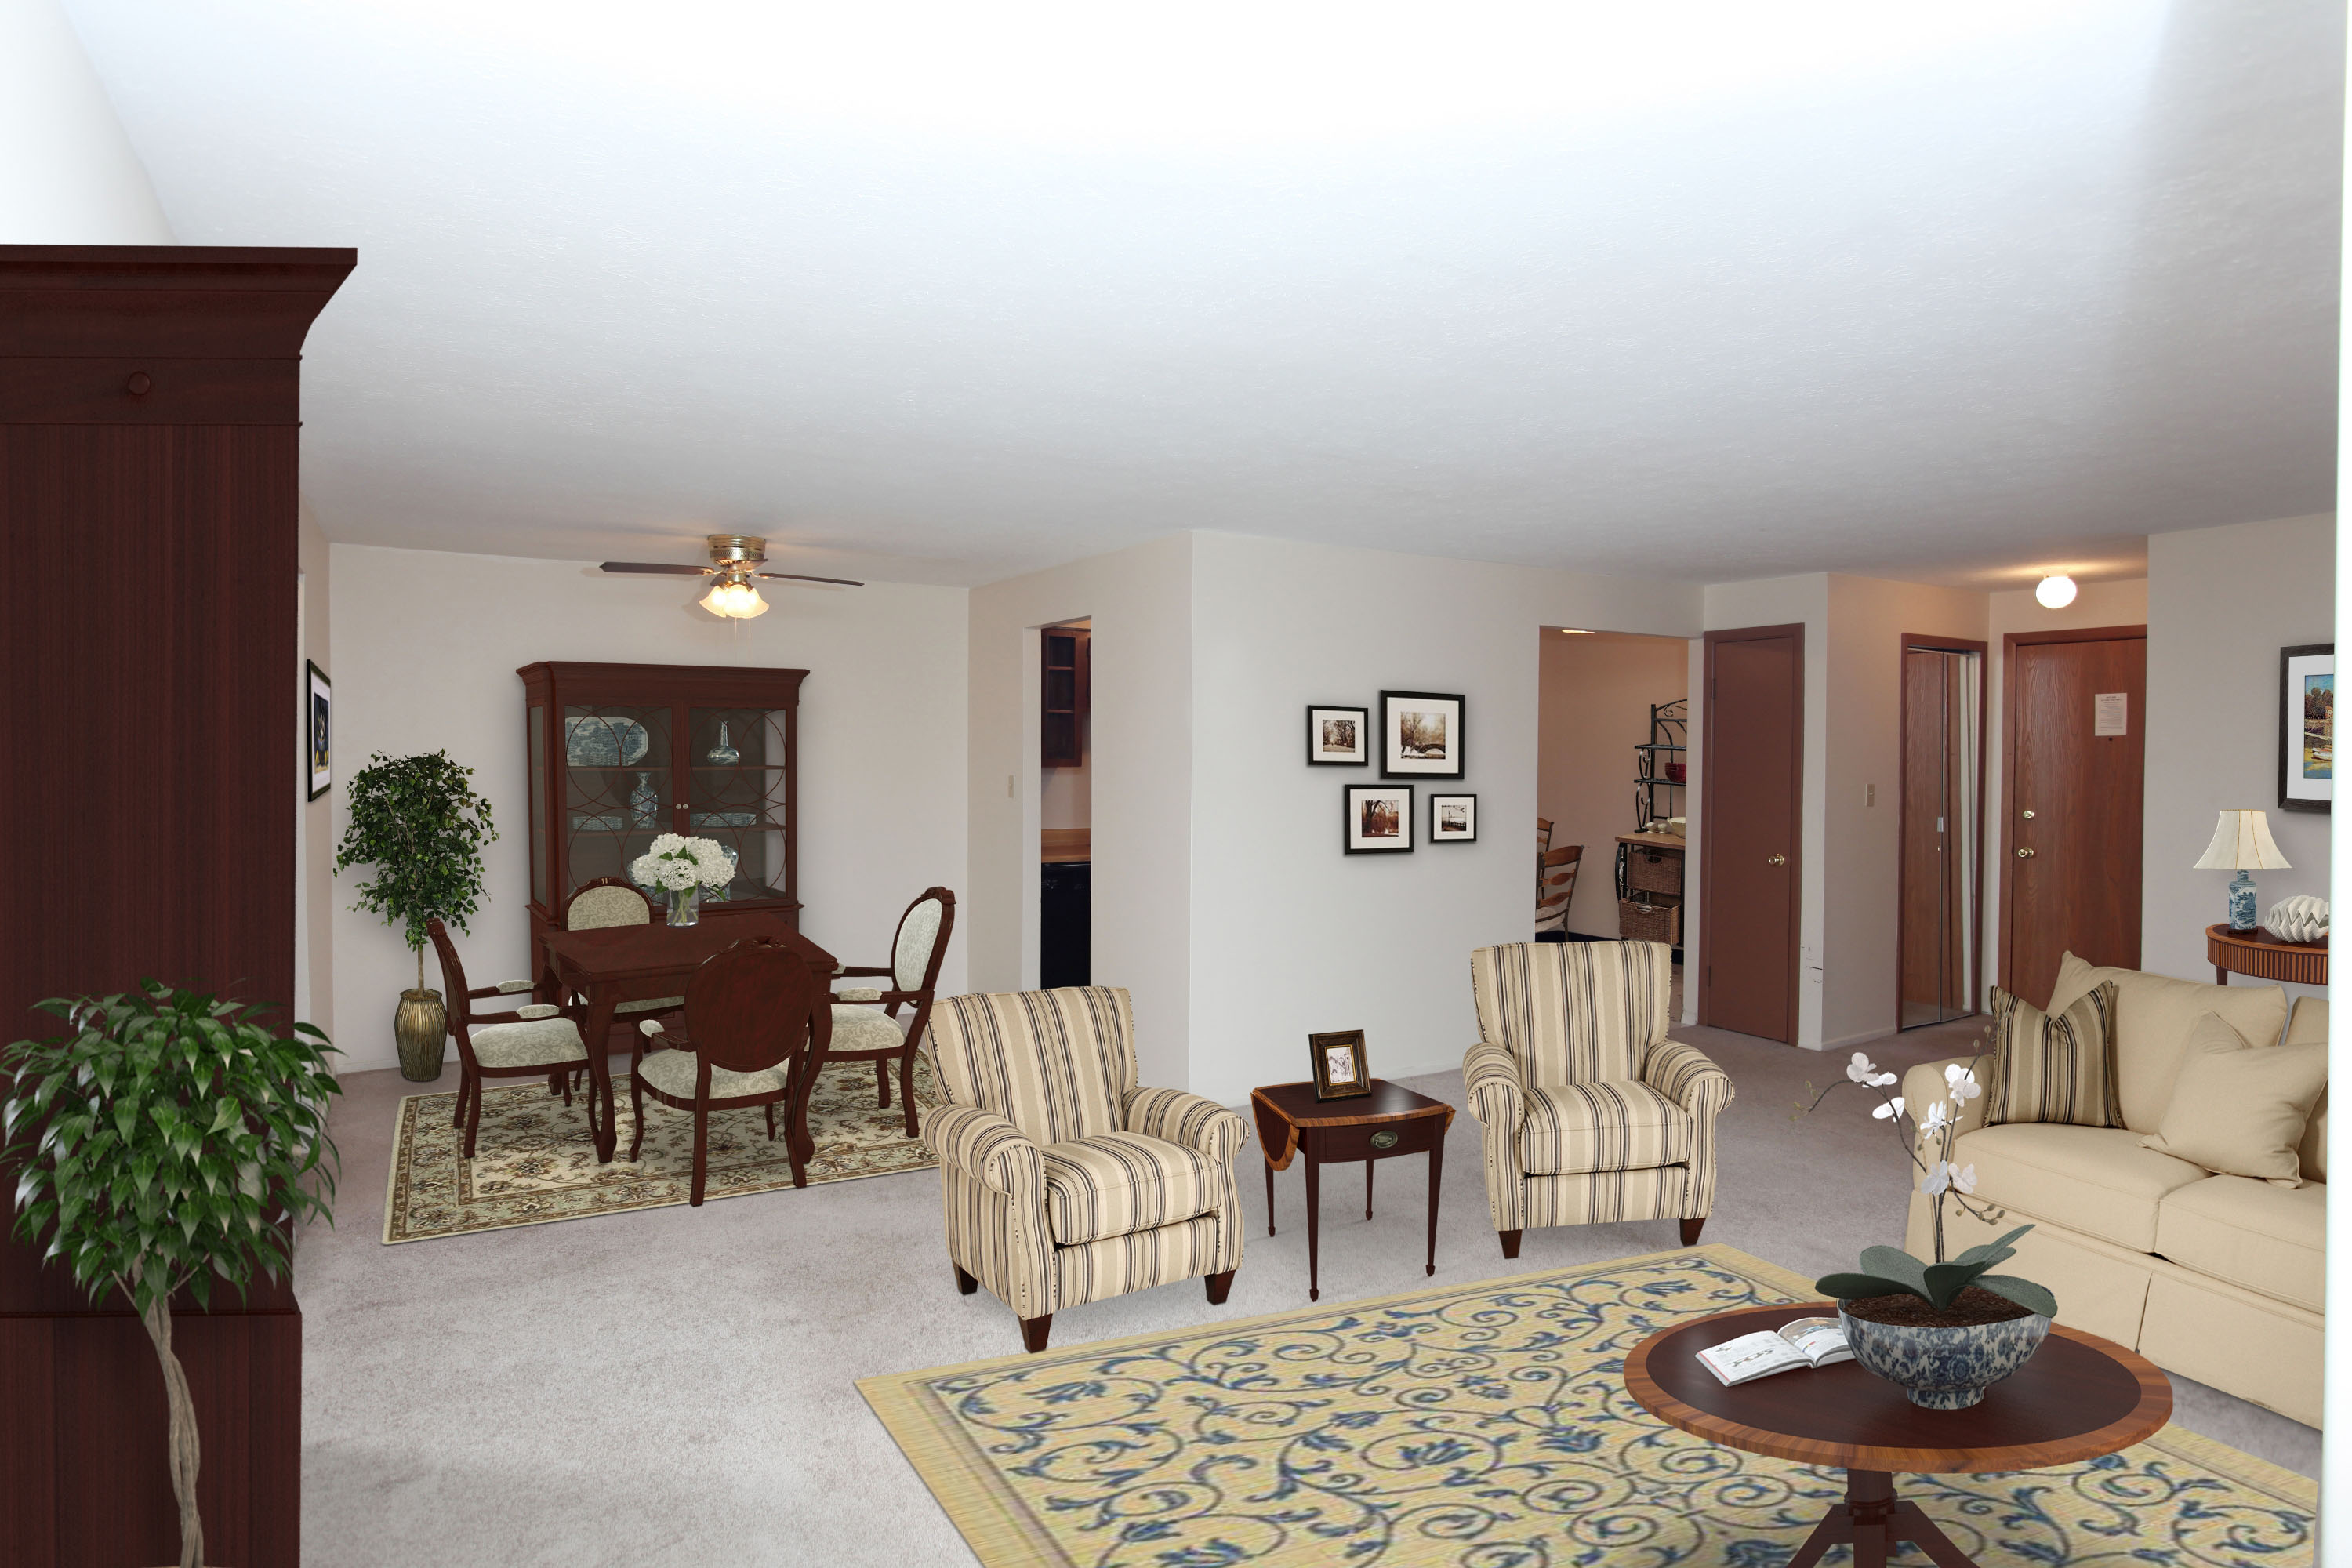 2B Living / Dining Room Furnished at the Greenridge on Euclid Apartments in Euclid, OH